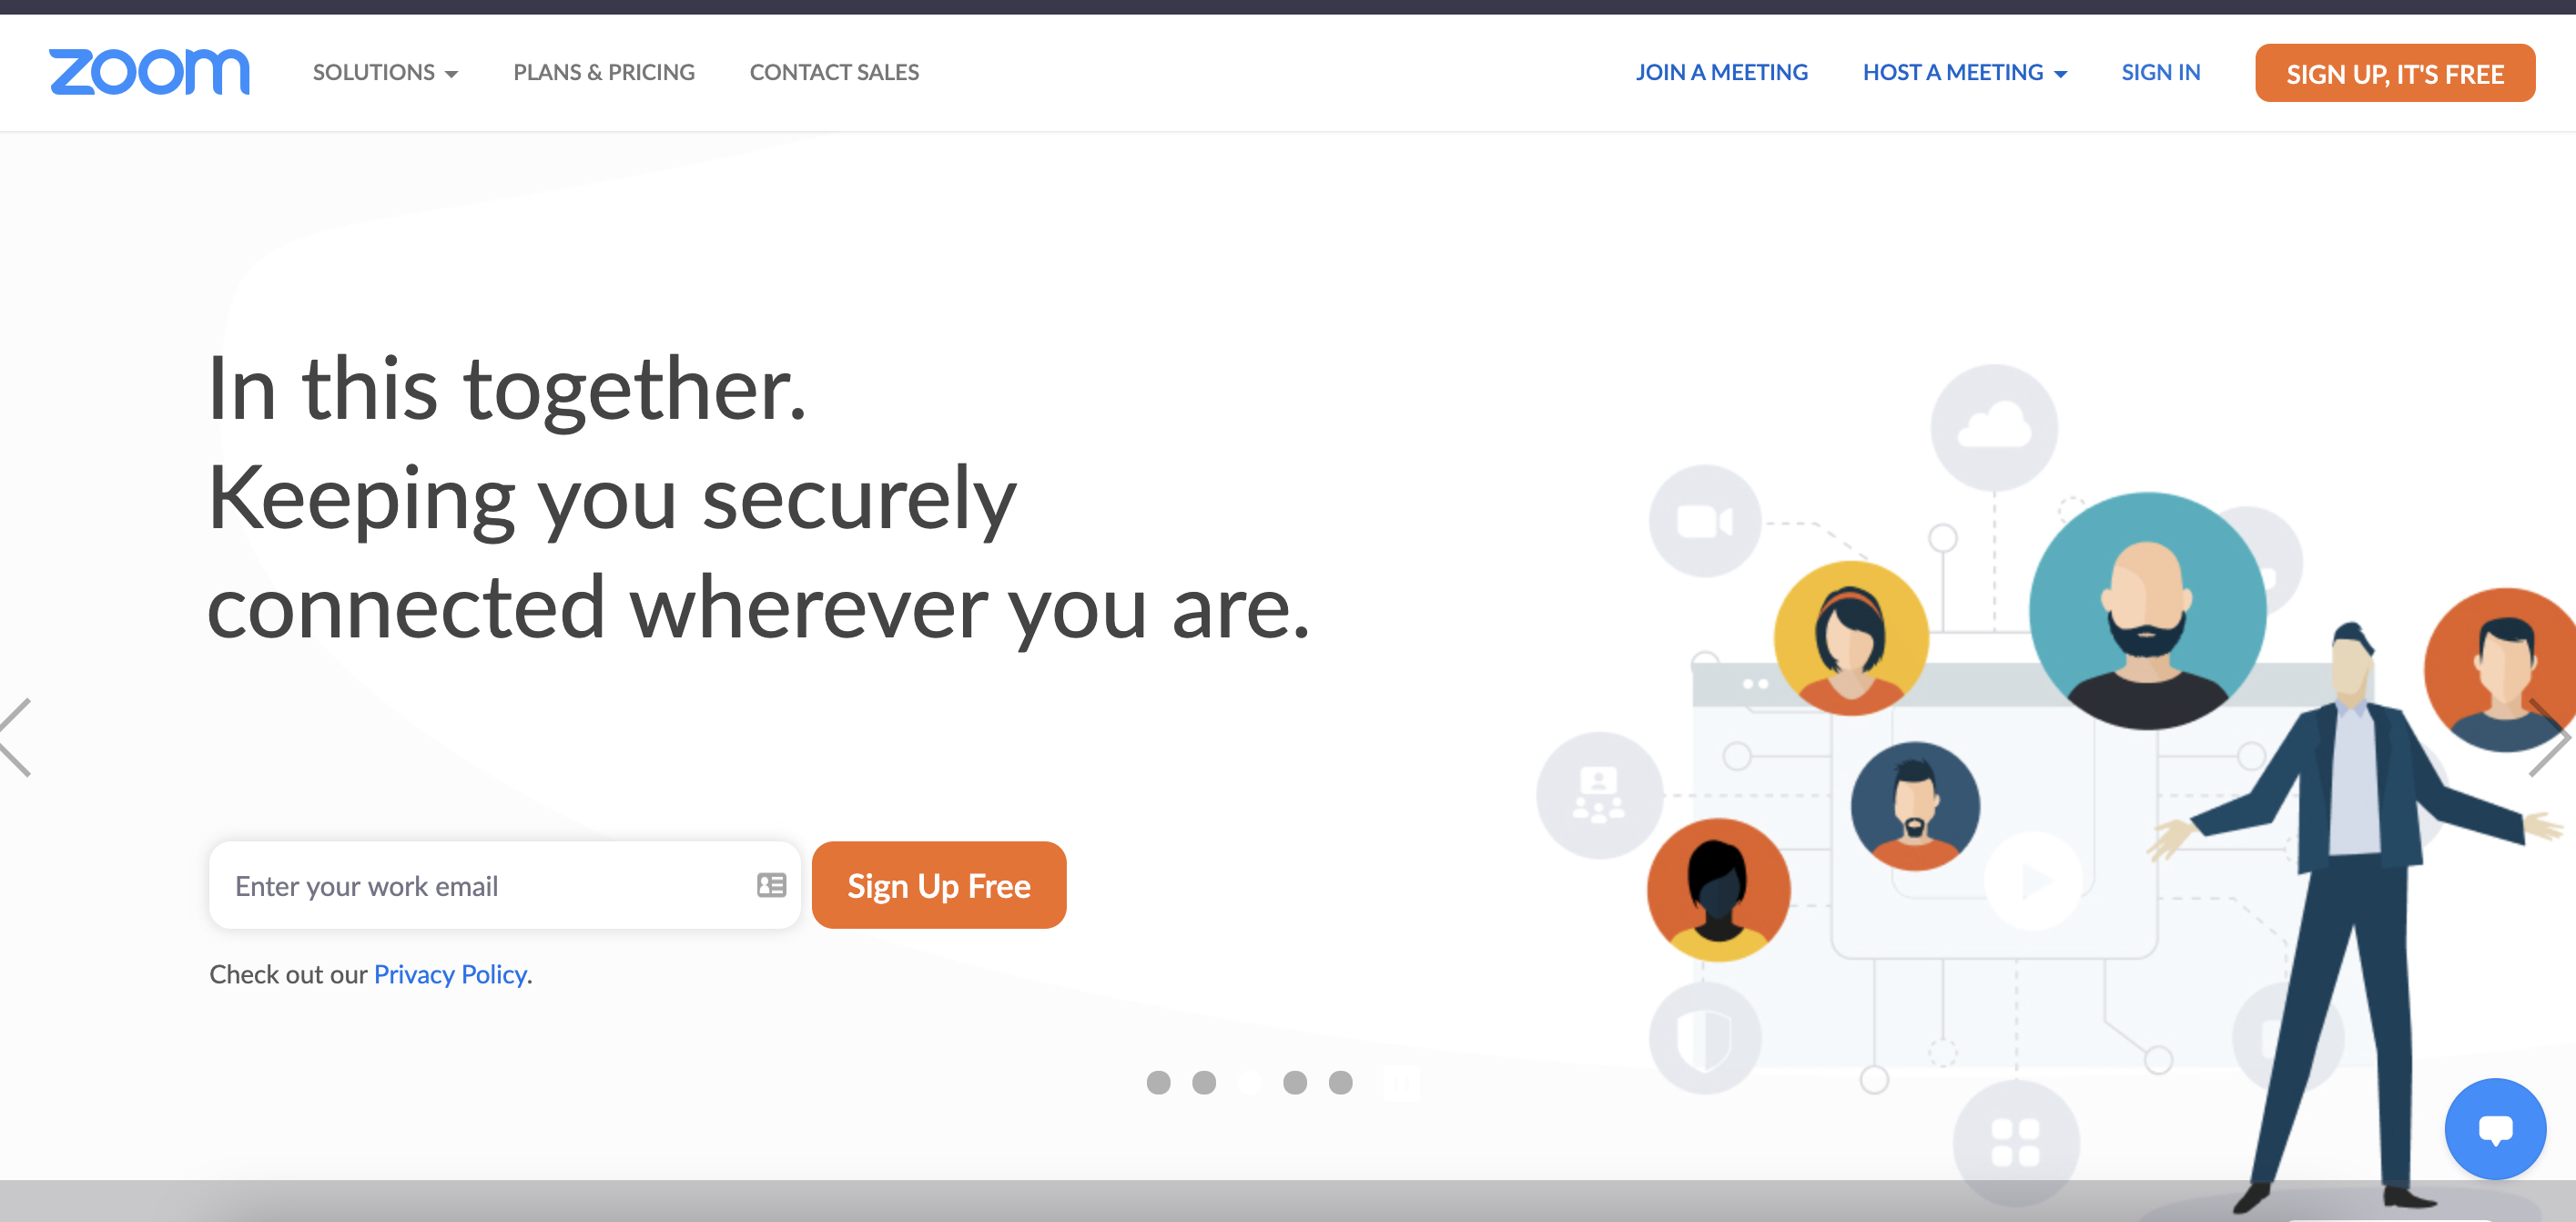 Zoom - tool for real estate agents.